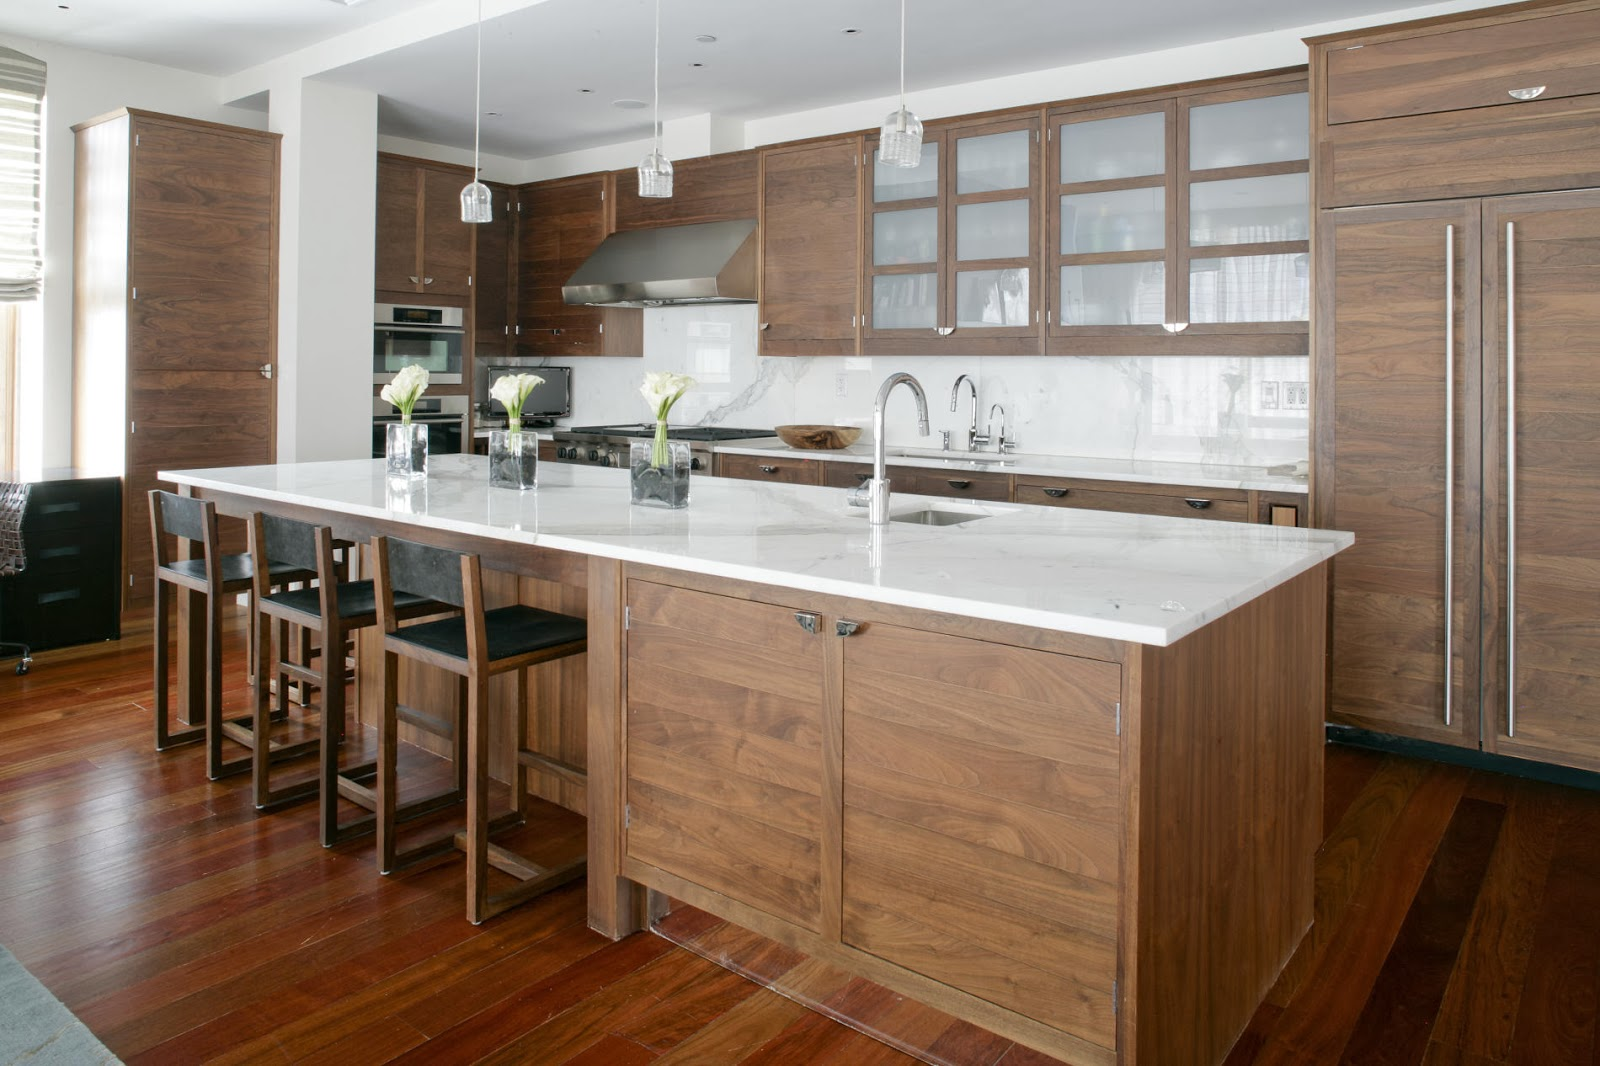 wood kitchen furnishing that brings in natural ambiance in modern style